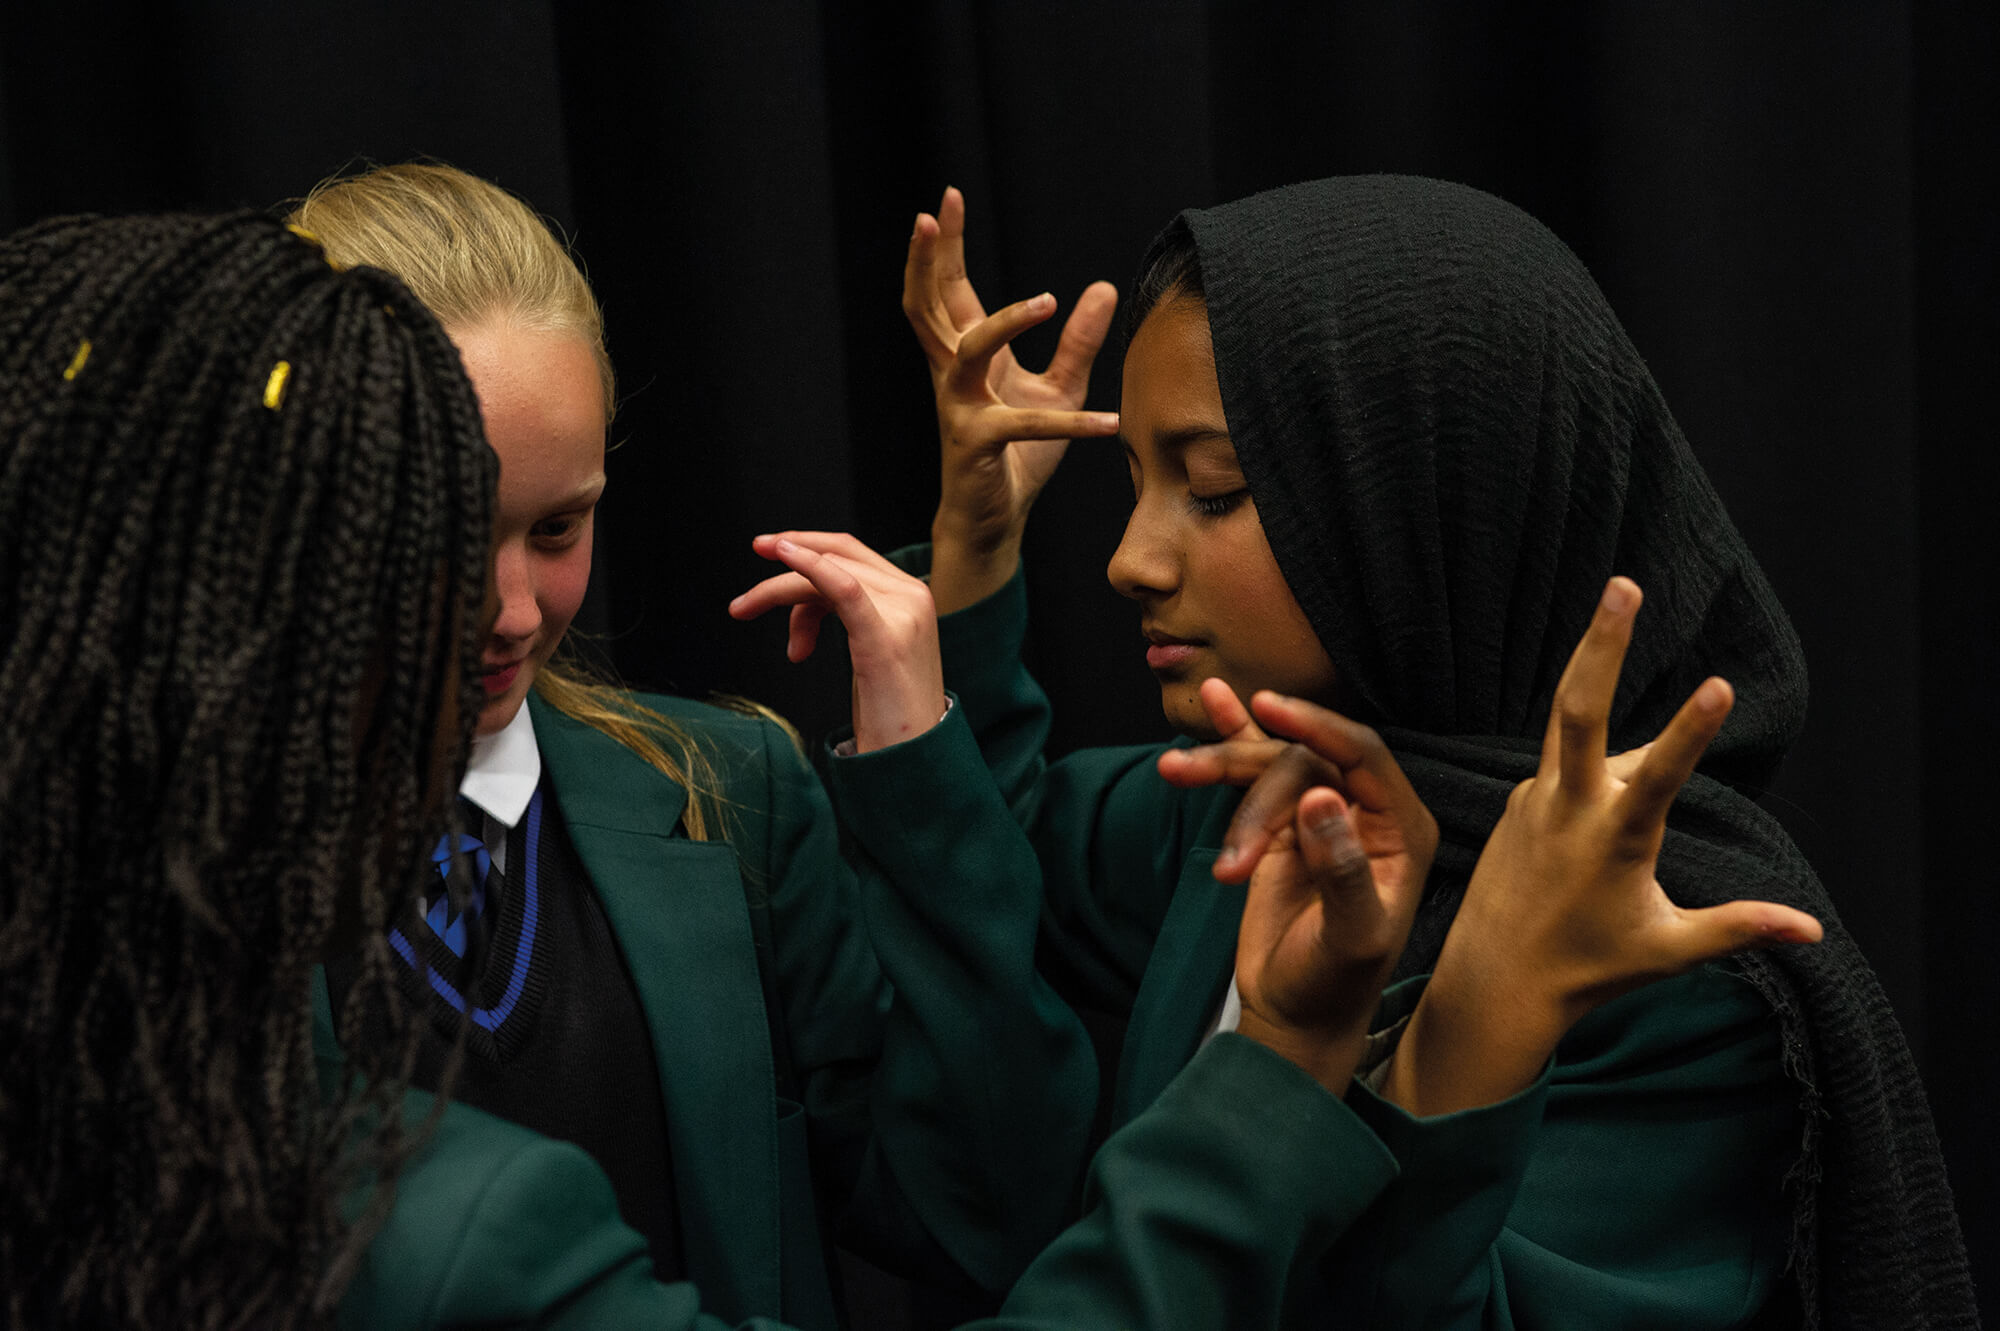 Drama Students at Lord Grey Academy